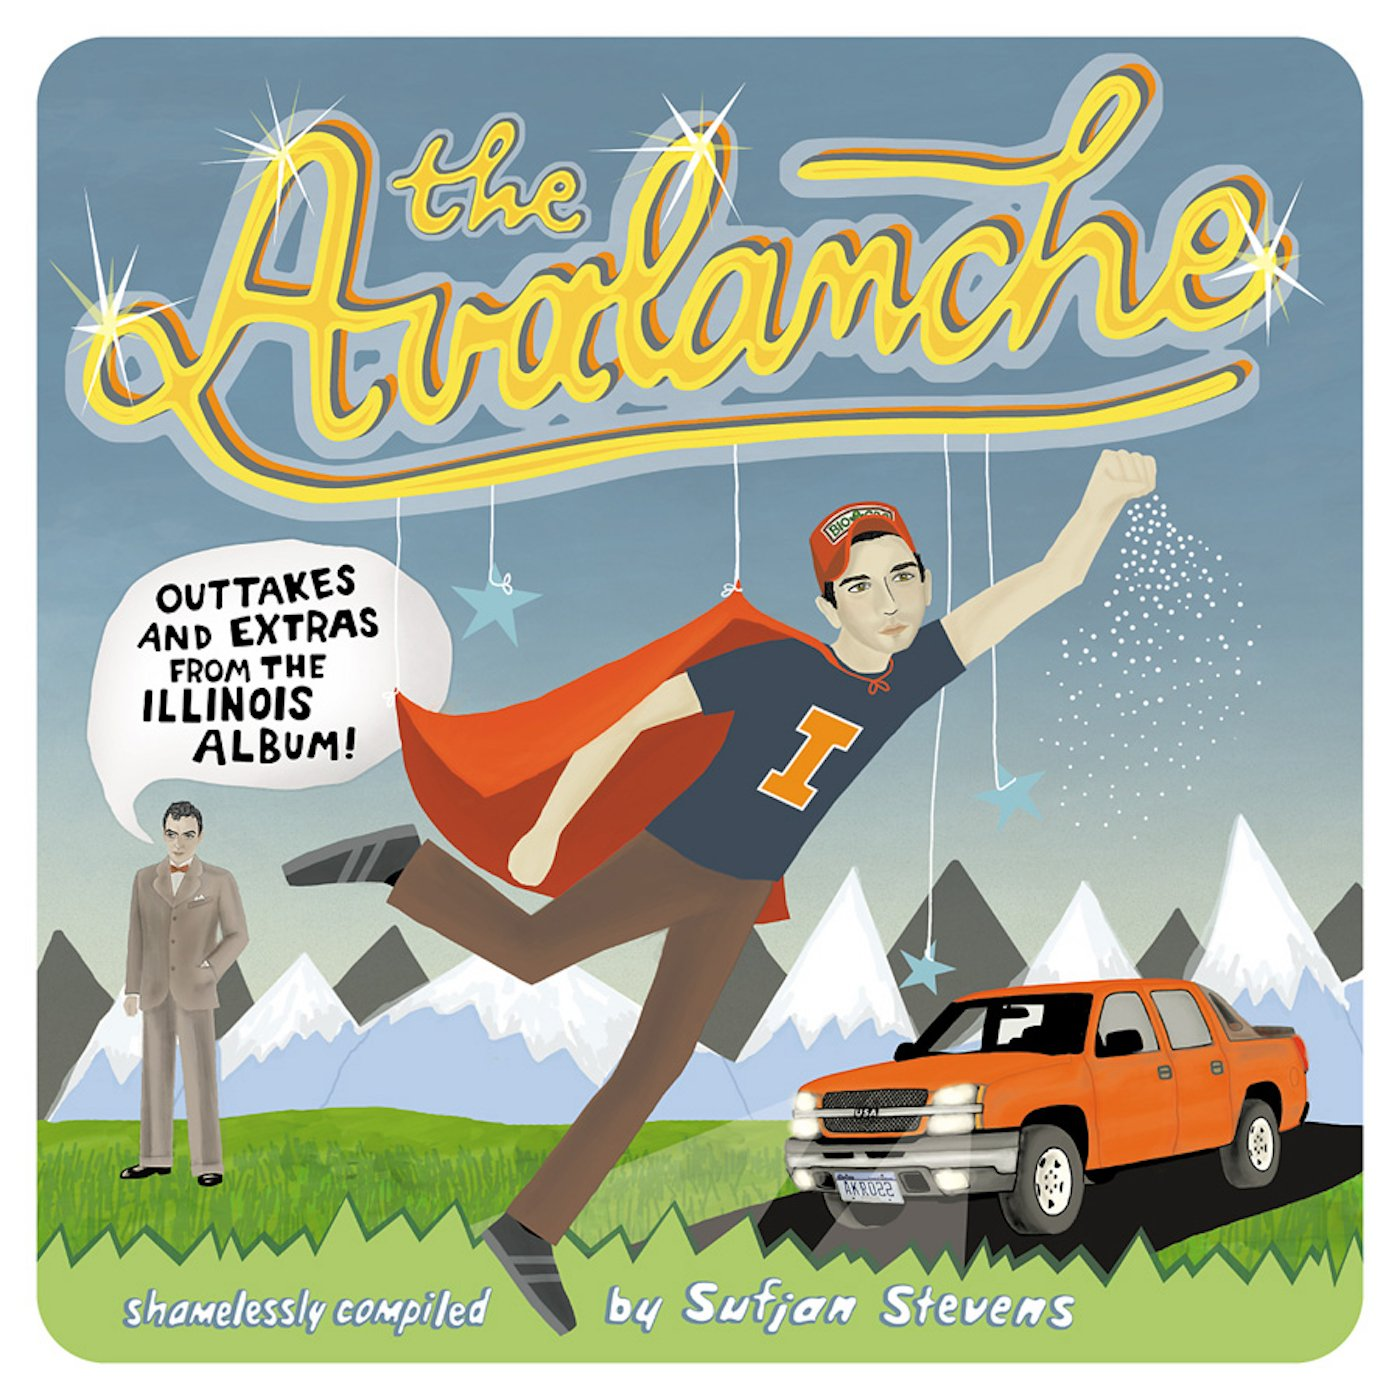 Sufjan Stevens, The Avalanche